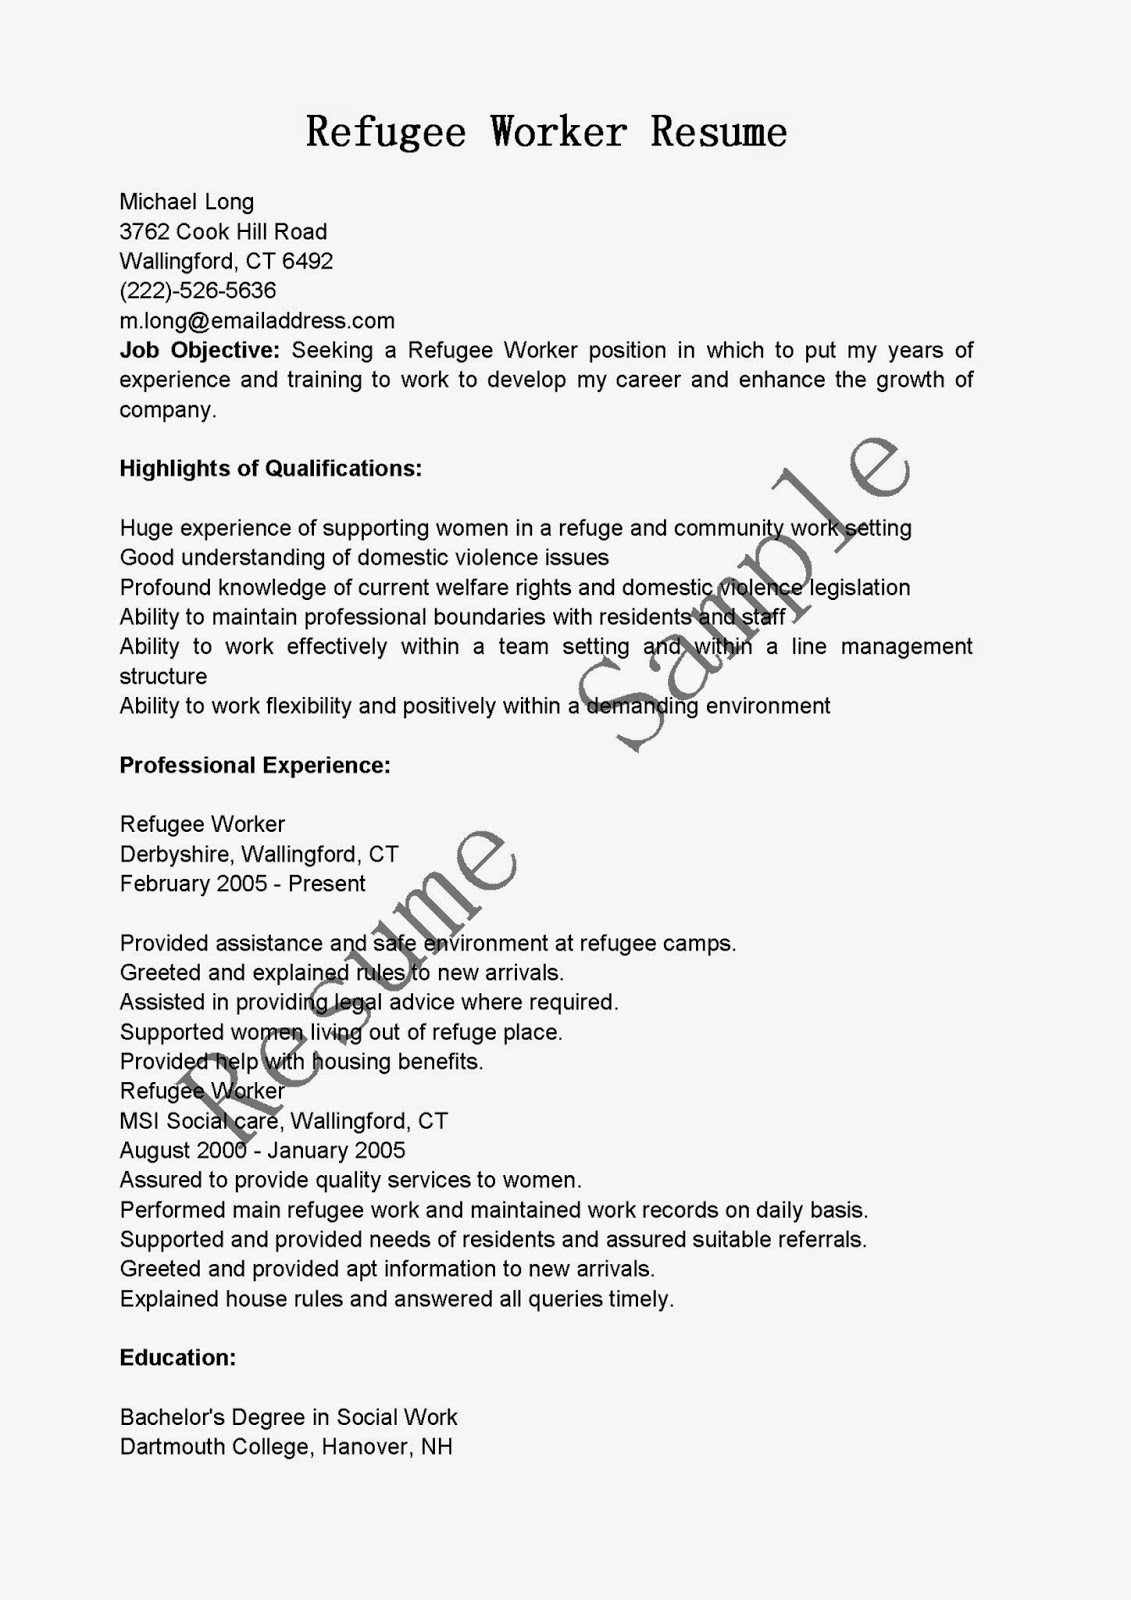 Resume samples refugee worker resume sample for Cover letter for domestic violence job